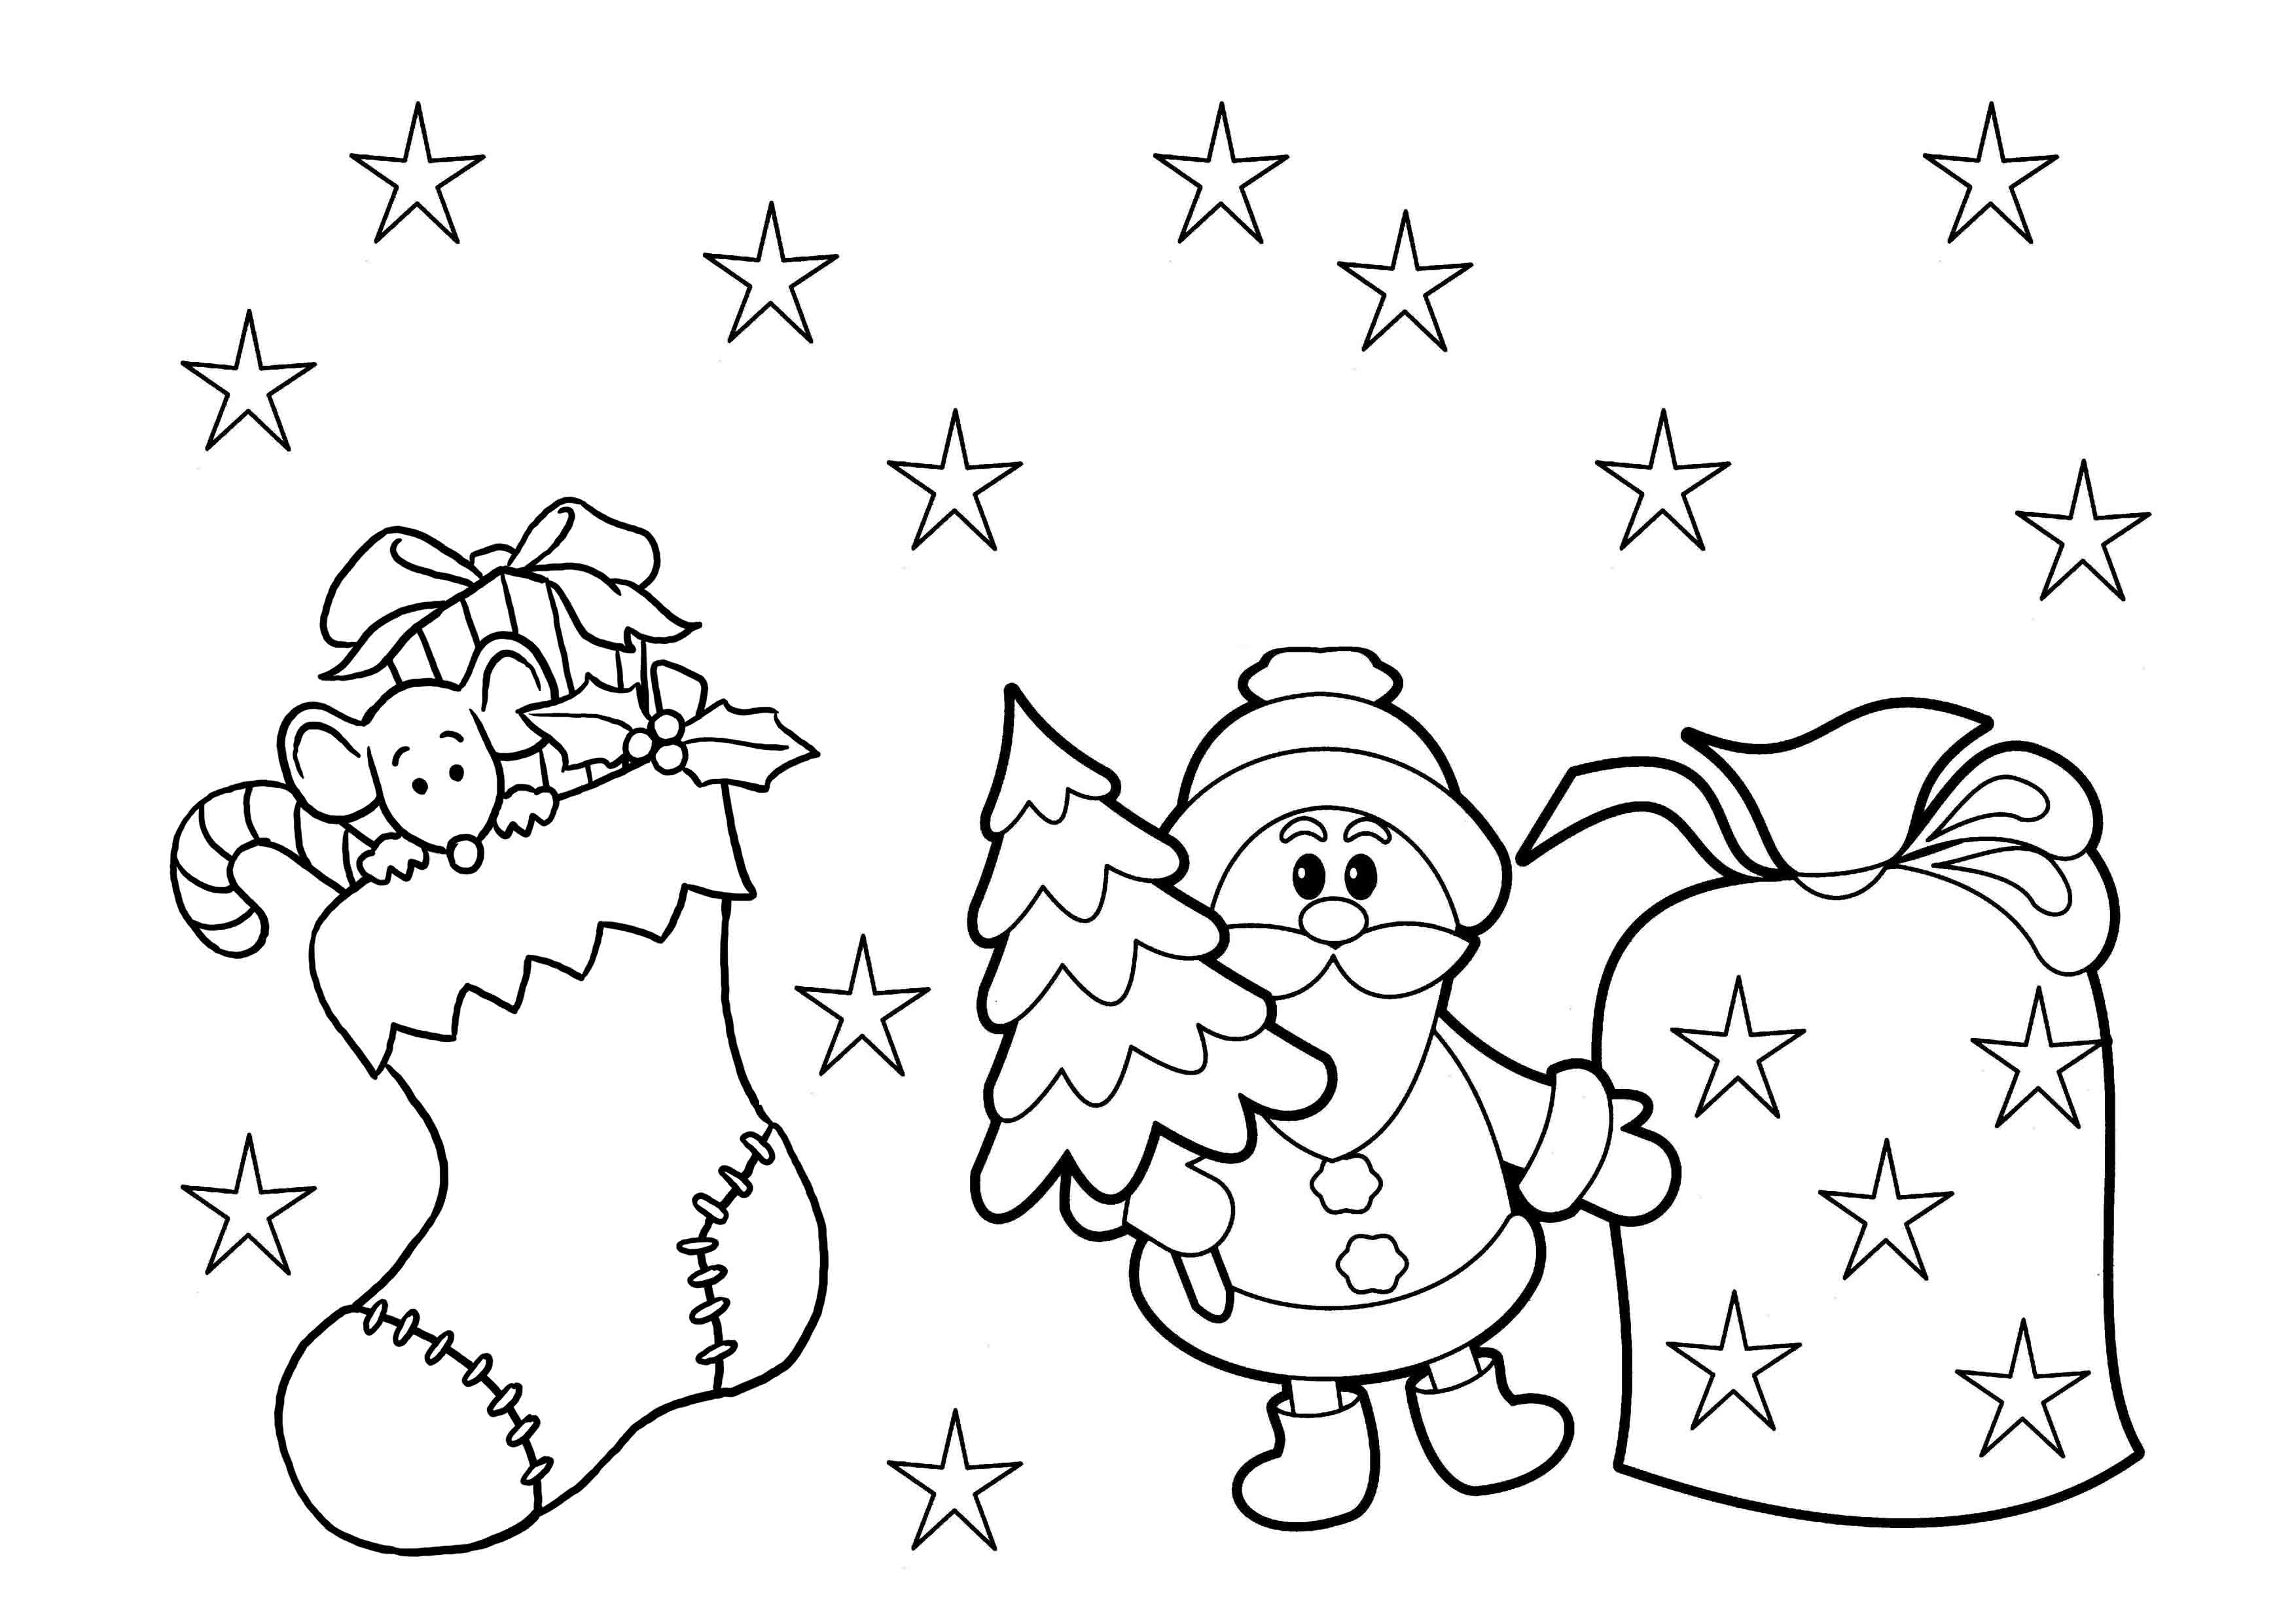 free printable christmas coloring sheets for toddlers print download printable christmas coloring pages for kids toddlers sheets for free printable coloring christmas